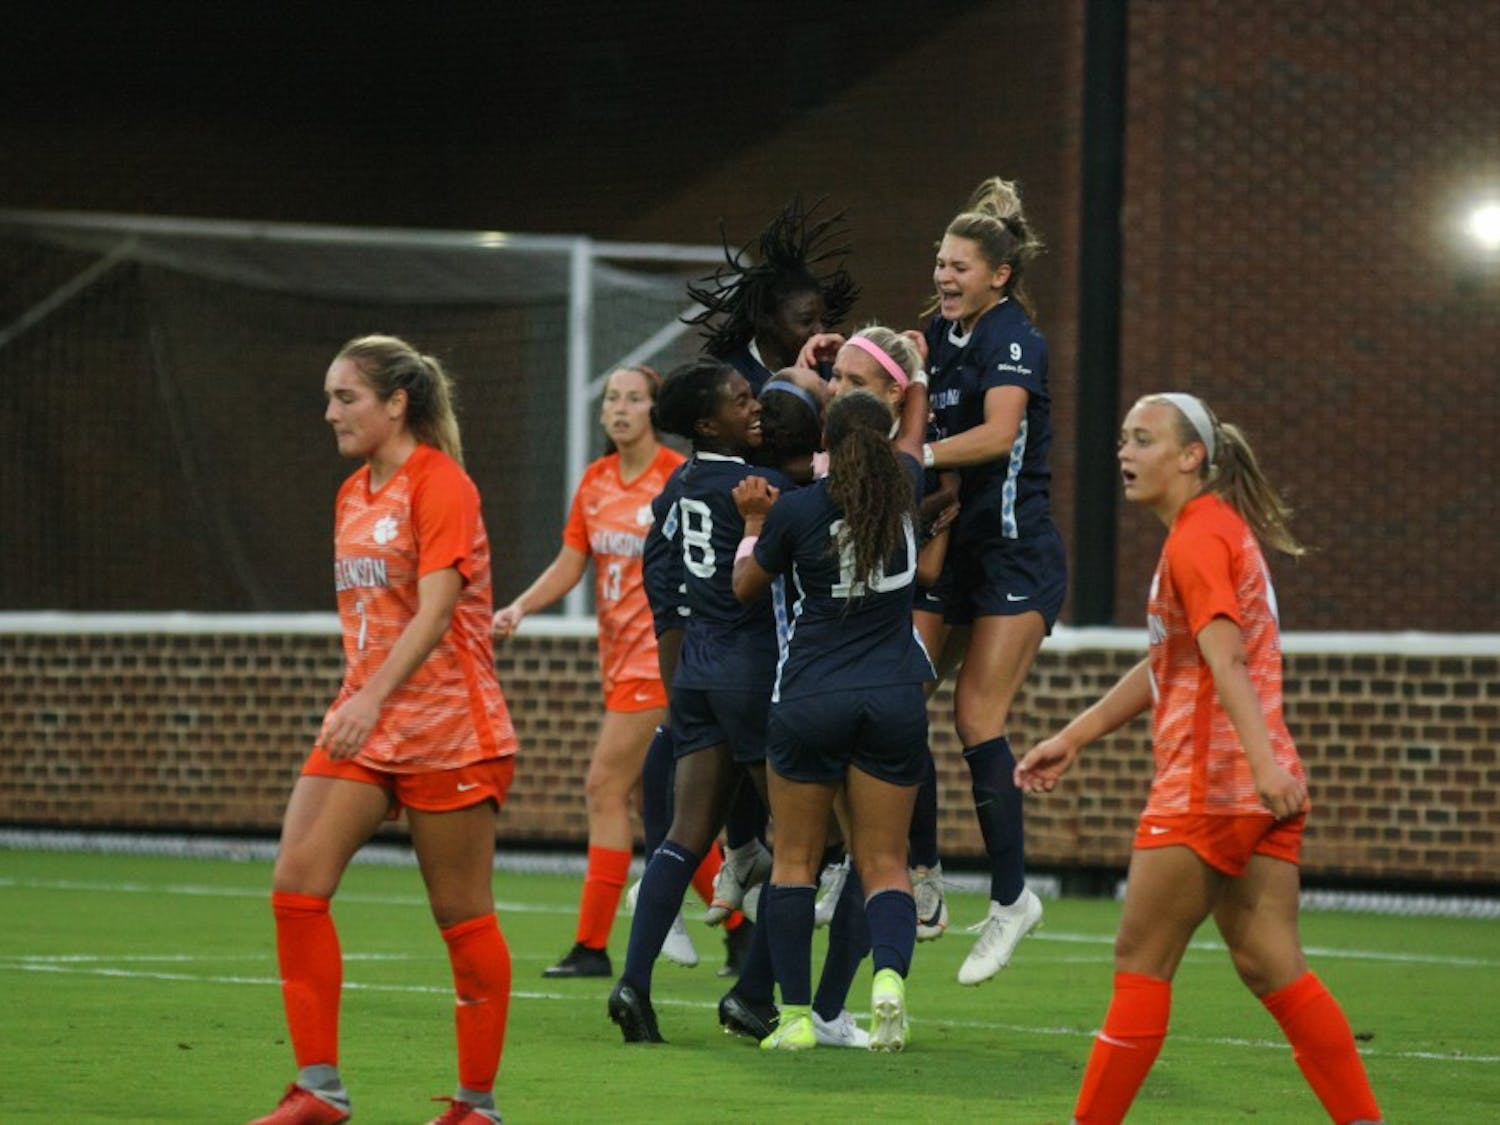 The UNC women's soccer team celebrates a goal scored against Clemson during a game on  Saturday, Oct. 5th, 2019. UNC beat Clemson 1-0.